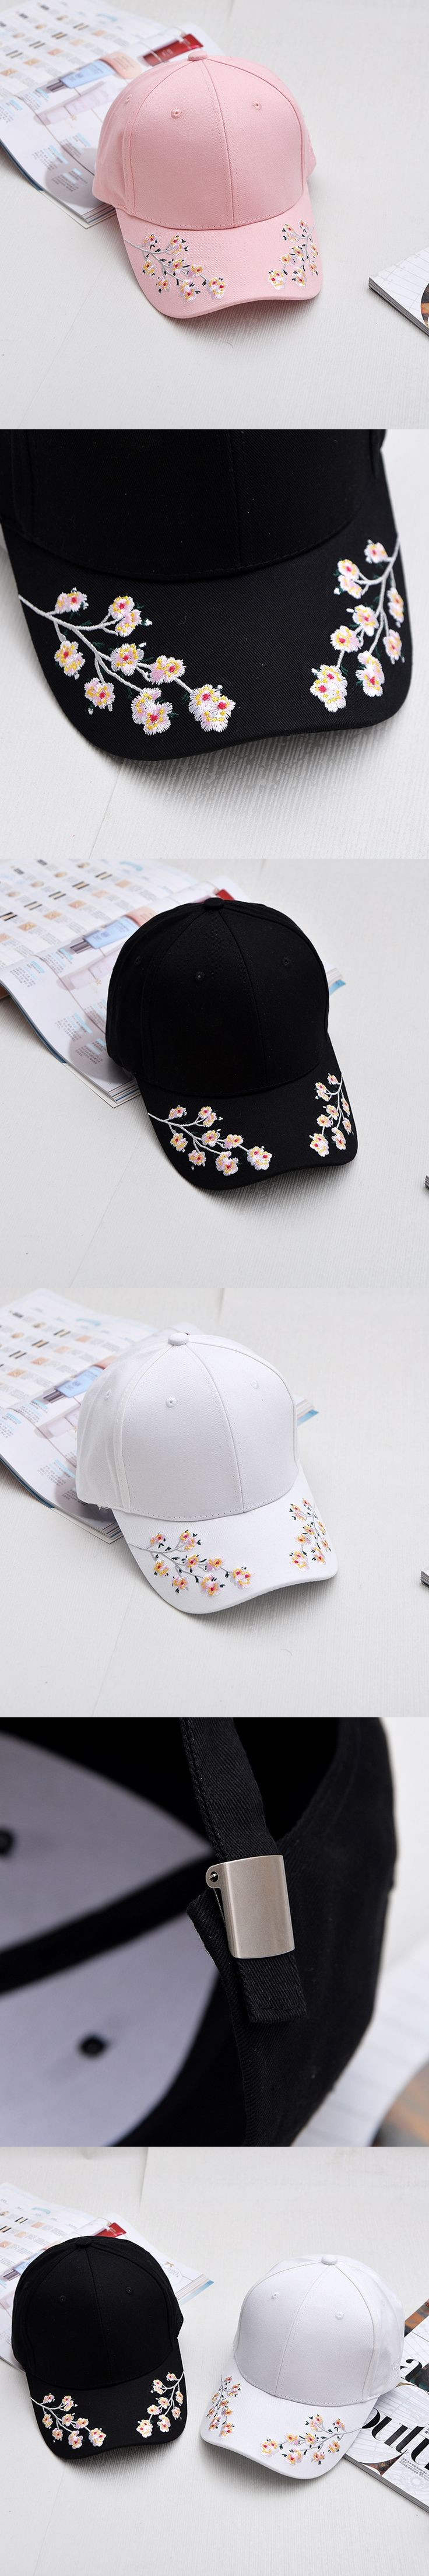 64aa1518a69 Cotton Baseball Hats for Women Plum Flower Embroidery Gorras Planas Hip Hop  Casual Snapback Caps Gifts